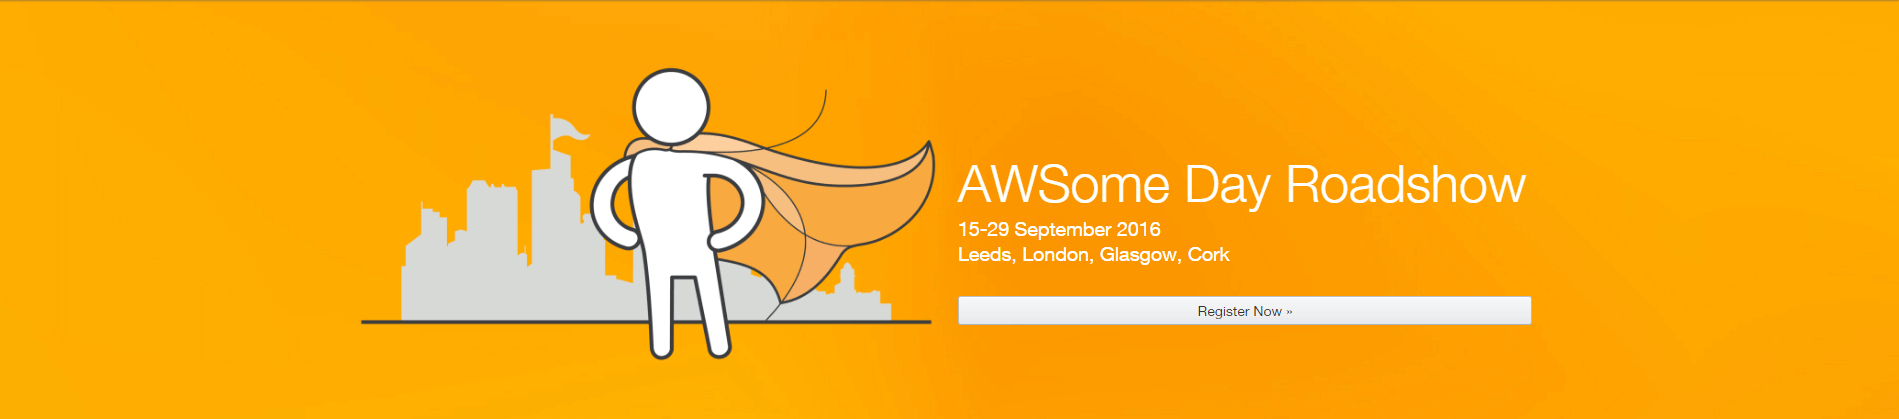 http://www.matillion.com/wp-content/uploads/2016/09/aws-awsome-day-roadshow.png